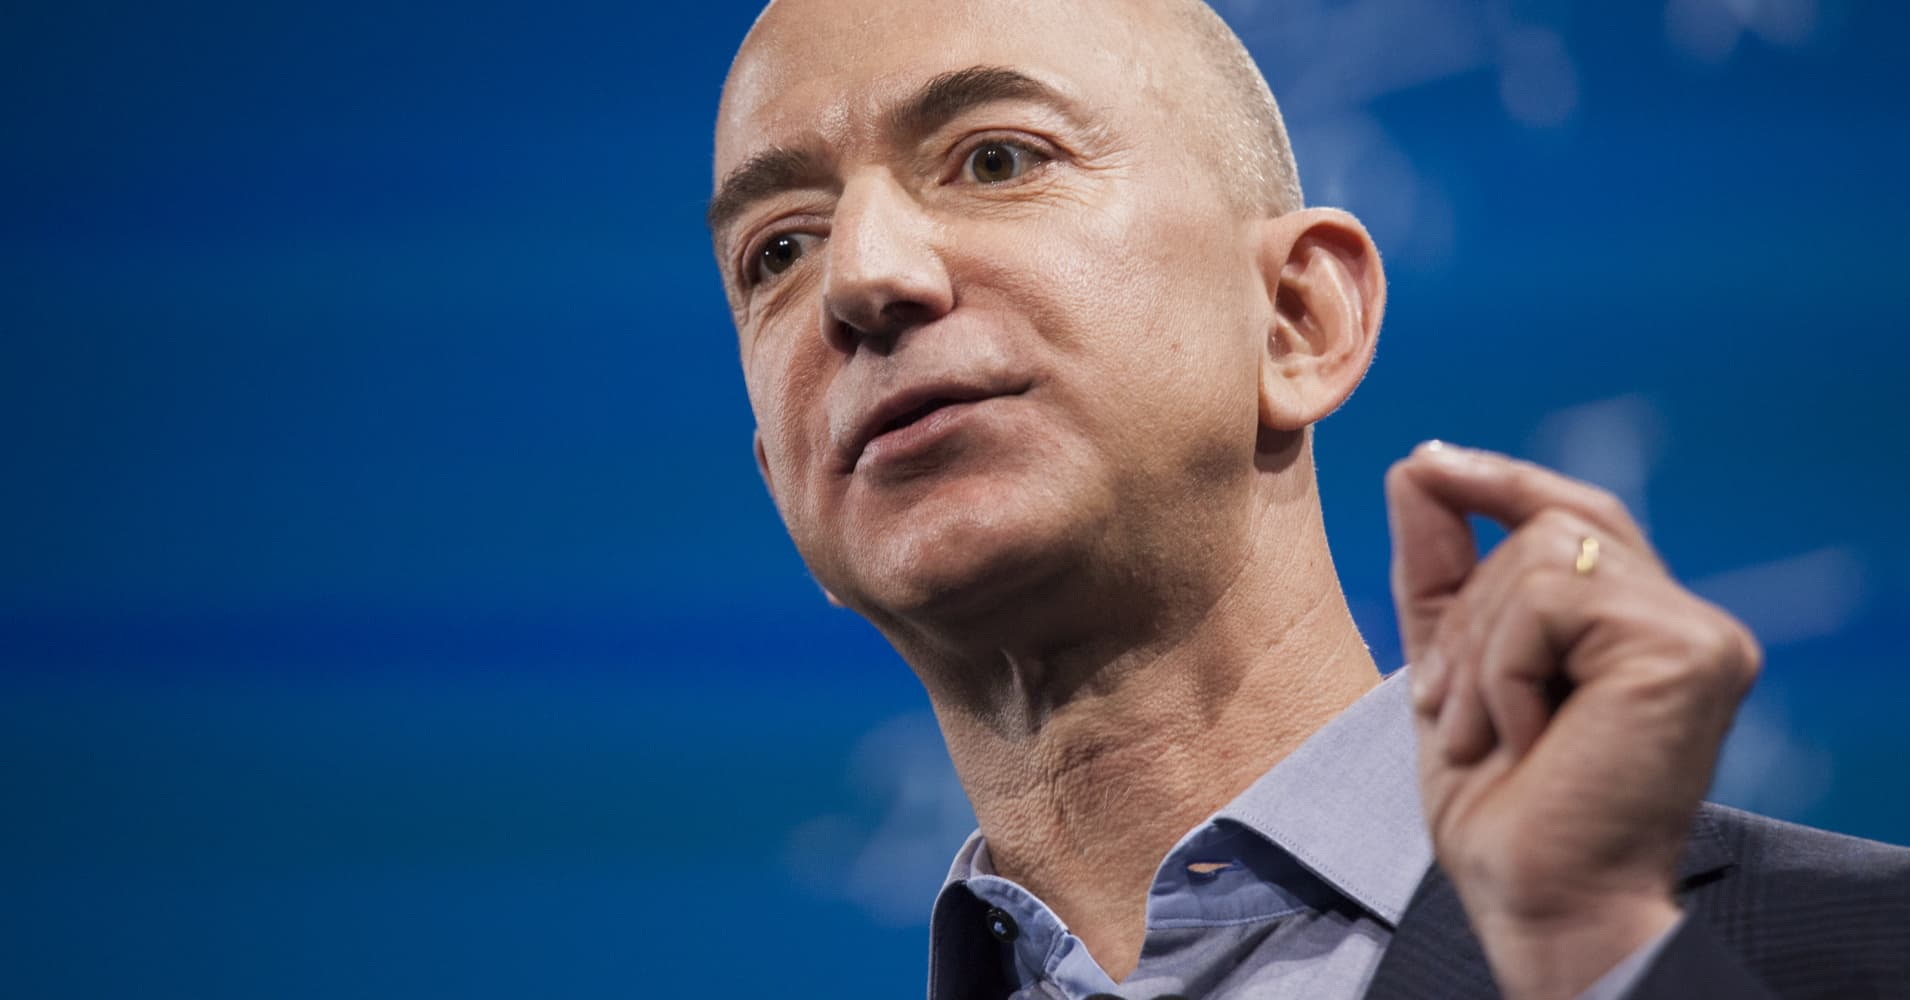 Amazon continues its push into the pharmacy business, and has appointed a 14-year vet to run it